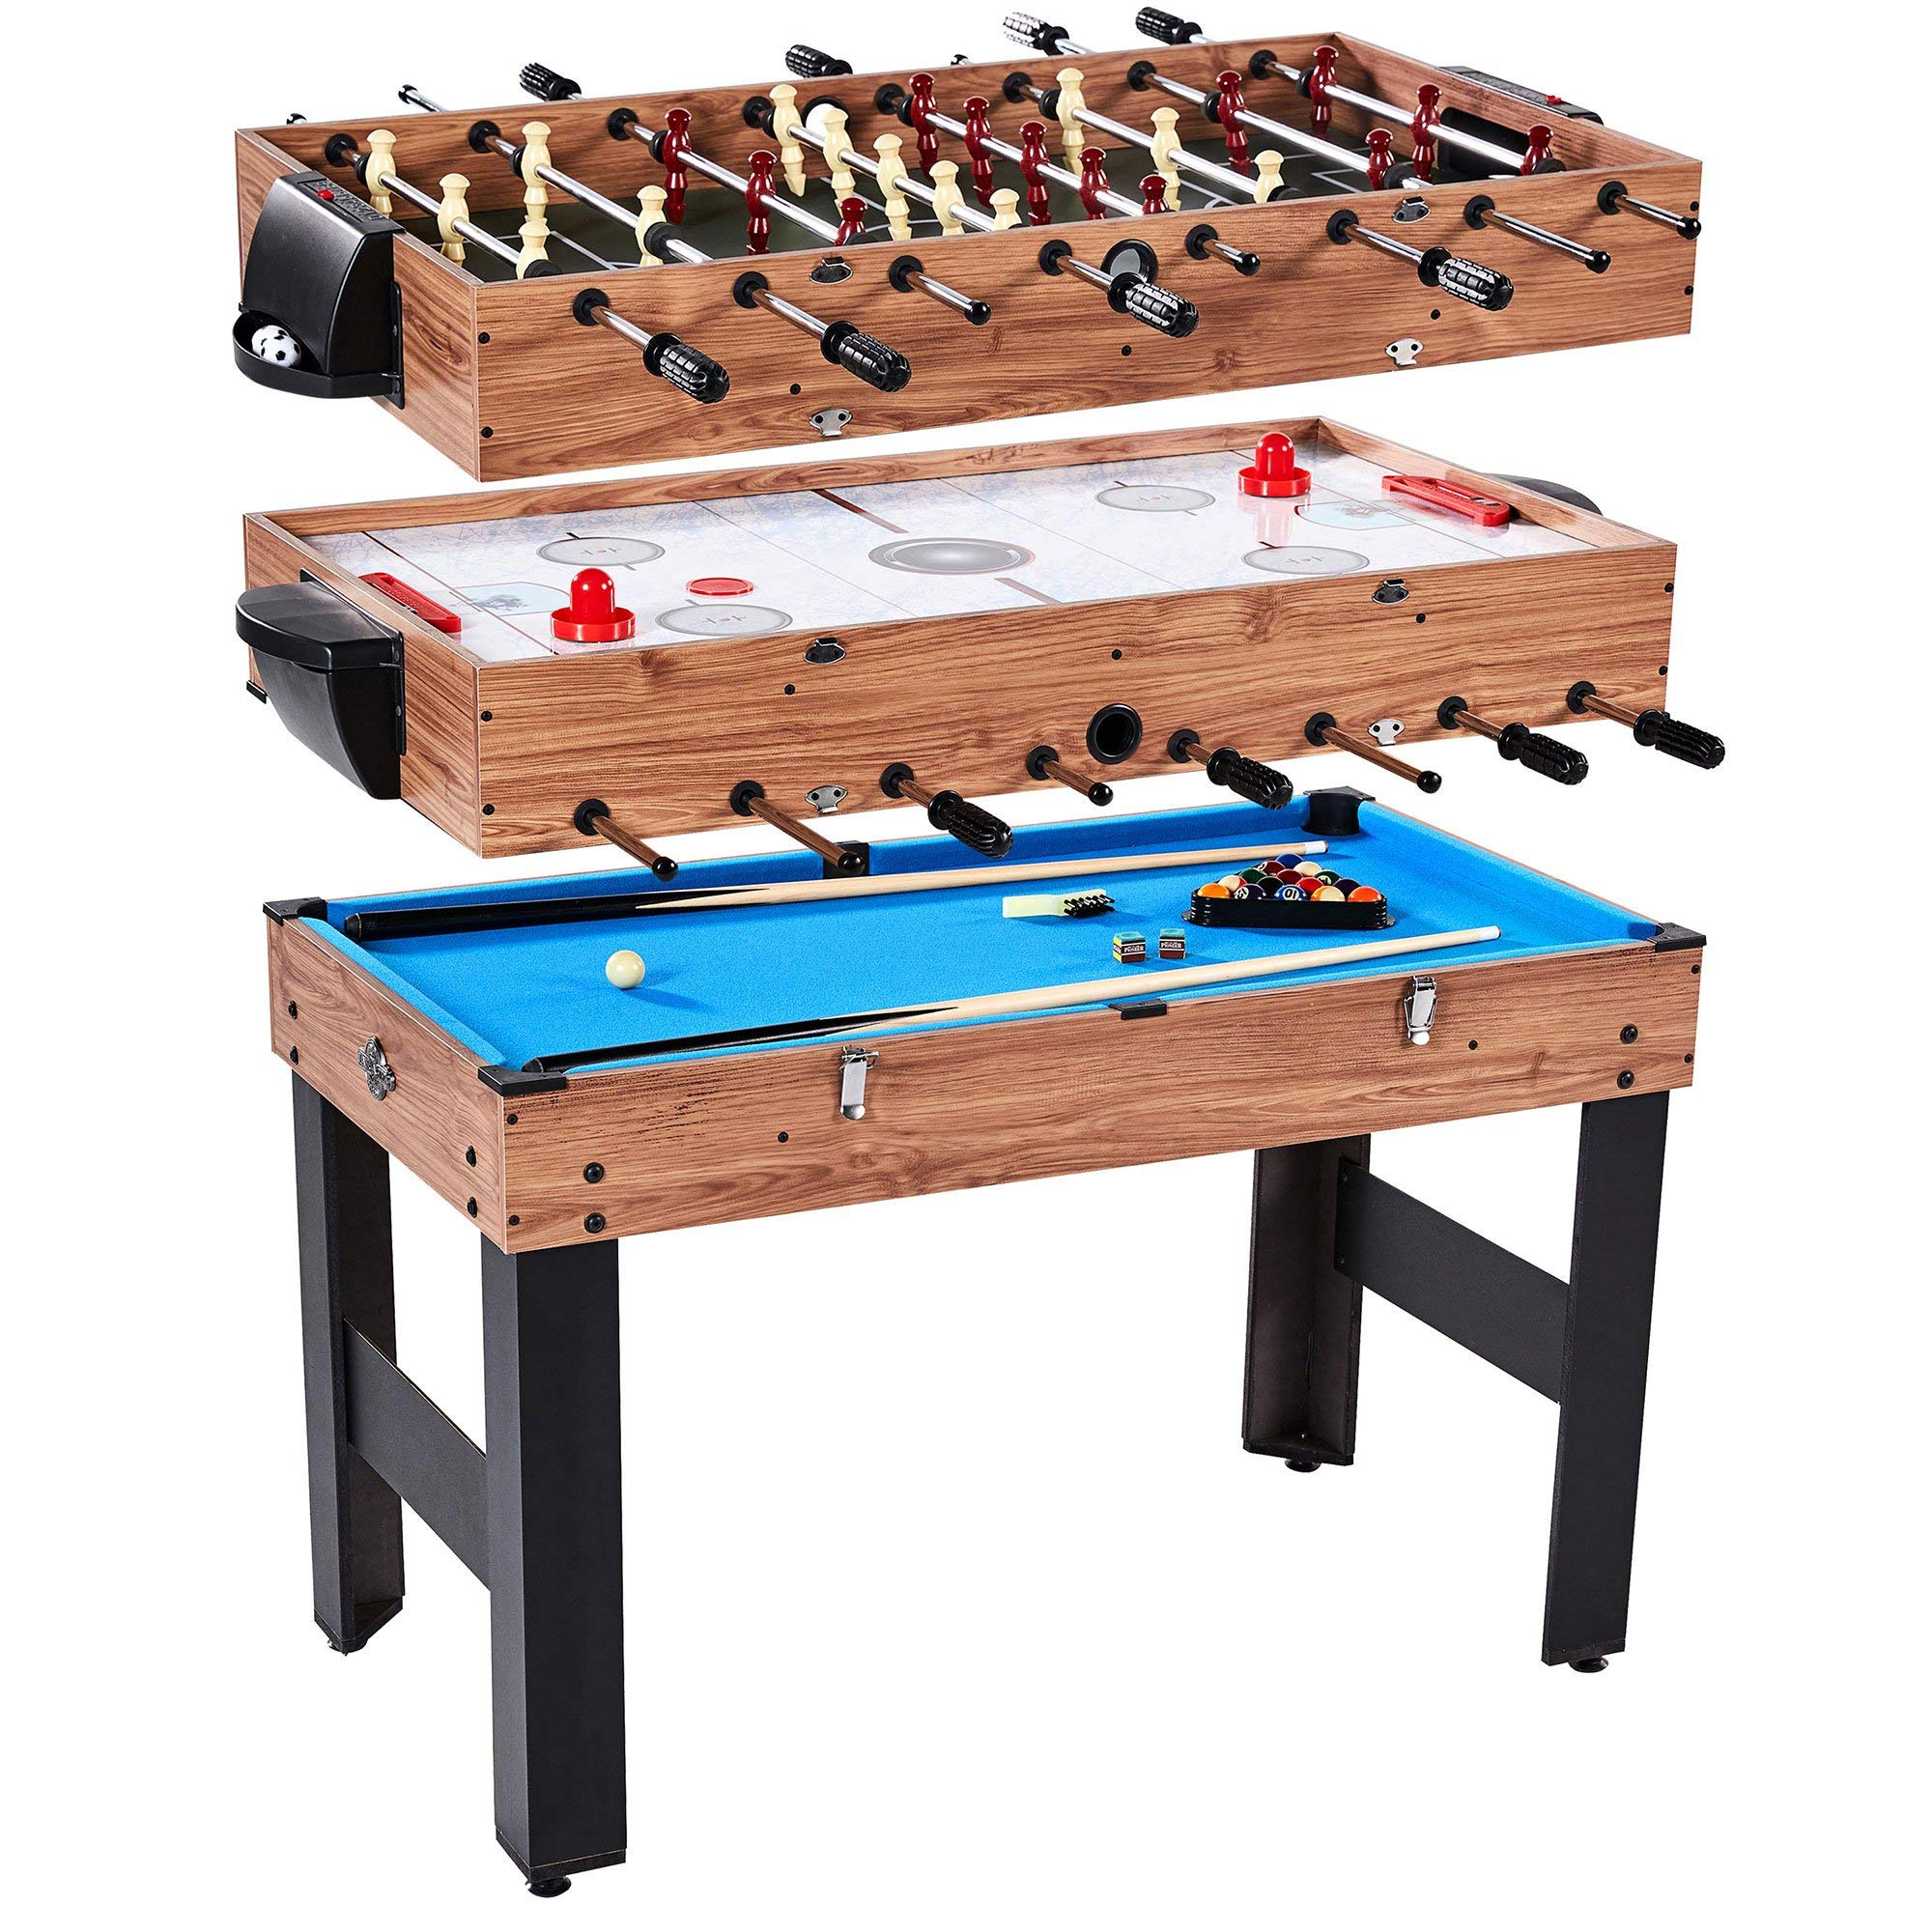 Lancaster 48'' 3 in 1 Pool Billiard Slide Hockey Foosball Combo Arcade Game Table by Lancaster Gaming Company